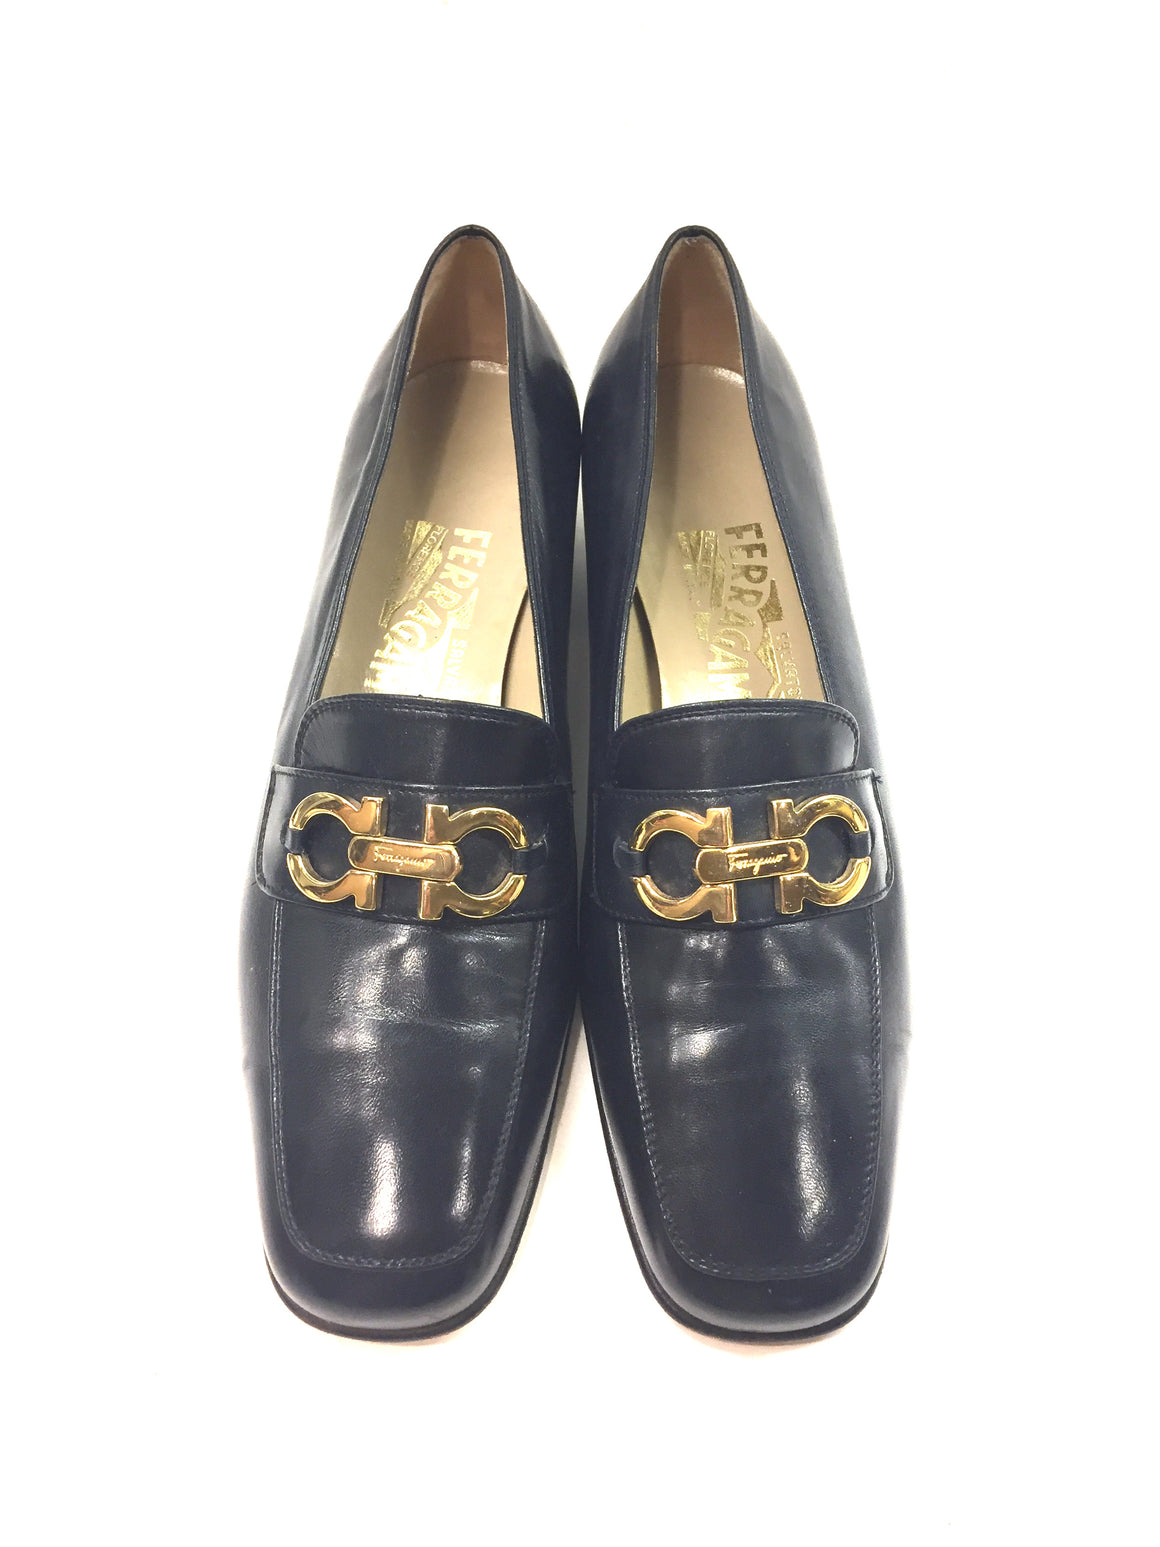 FERRAGAMO Navy-Blue Leather Gold Gancini Buckle Low-Heel Loafers Shoes Sz7B